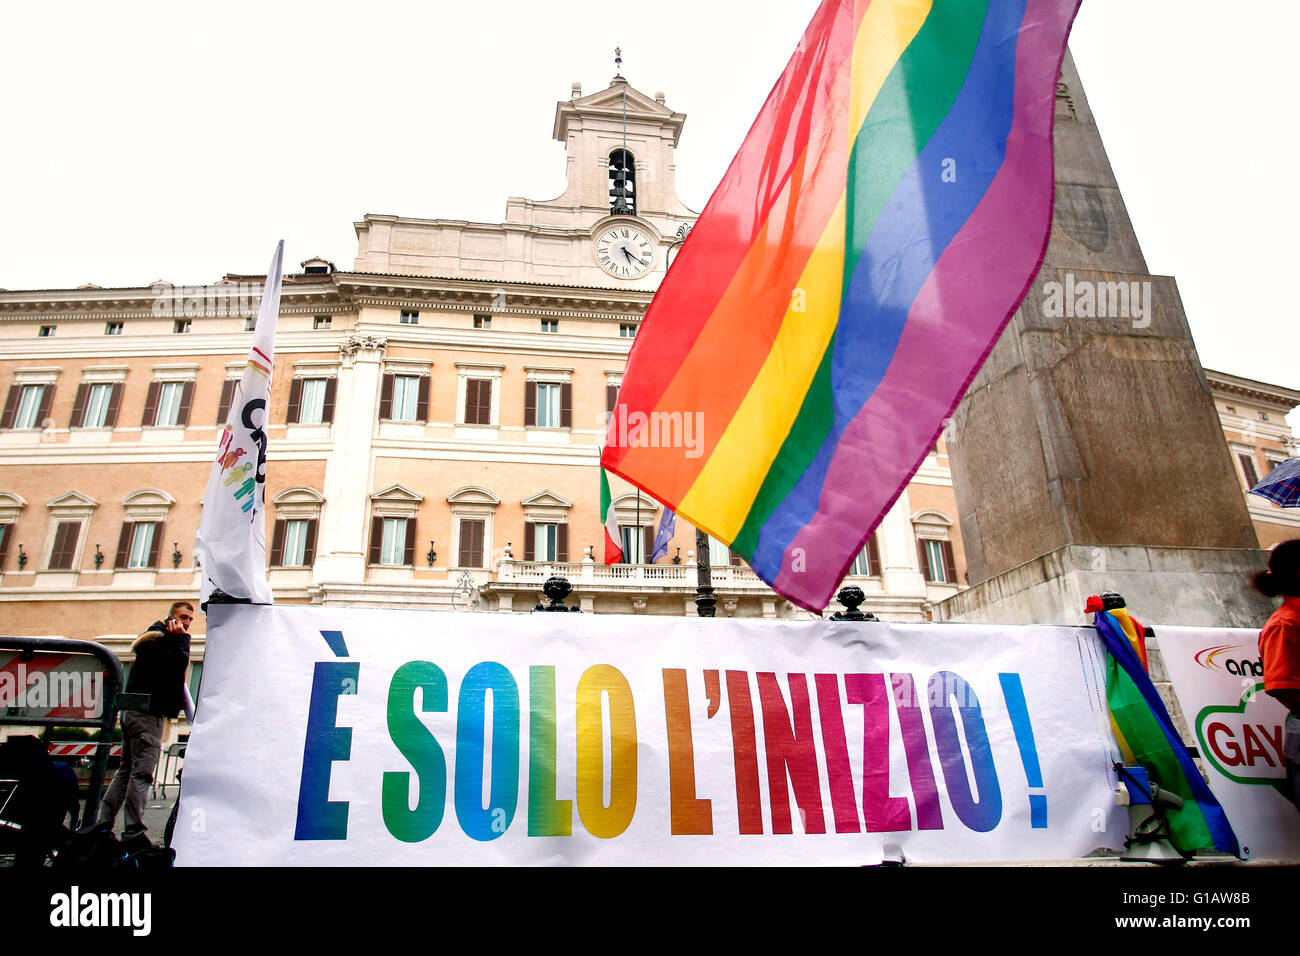 Rome, Italy. 11th May, 2016. Banner This is only the beginning Rome 11th May 2016. Demonstration for Civil Rights - Stock Image